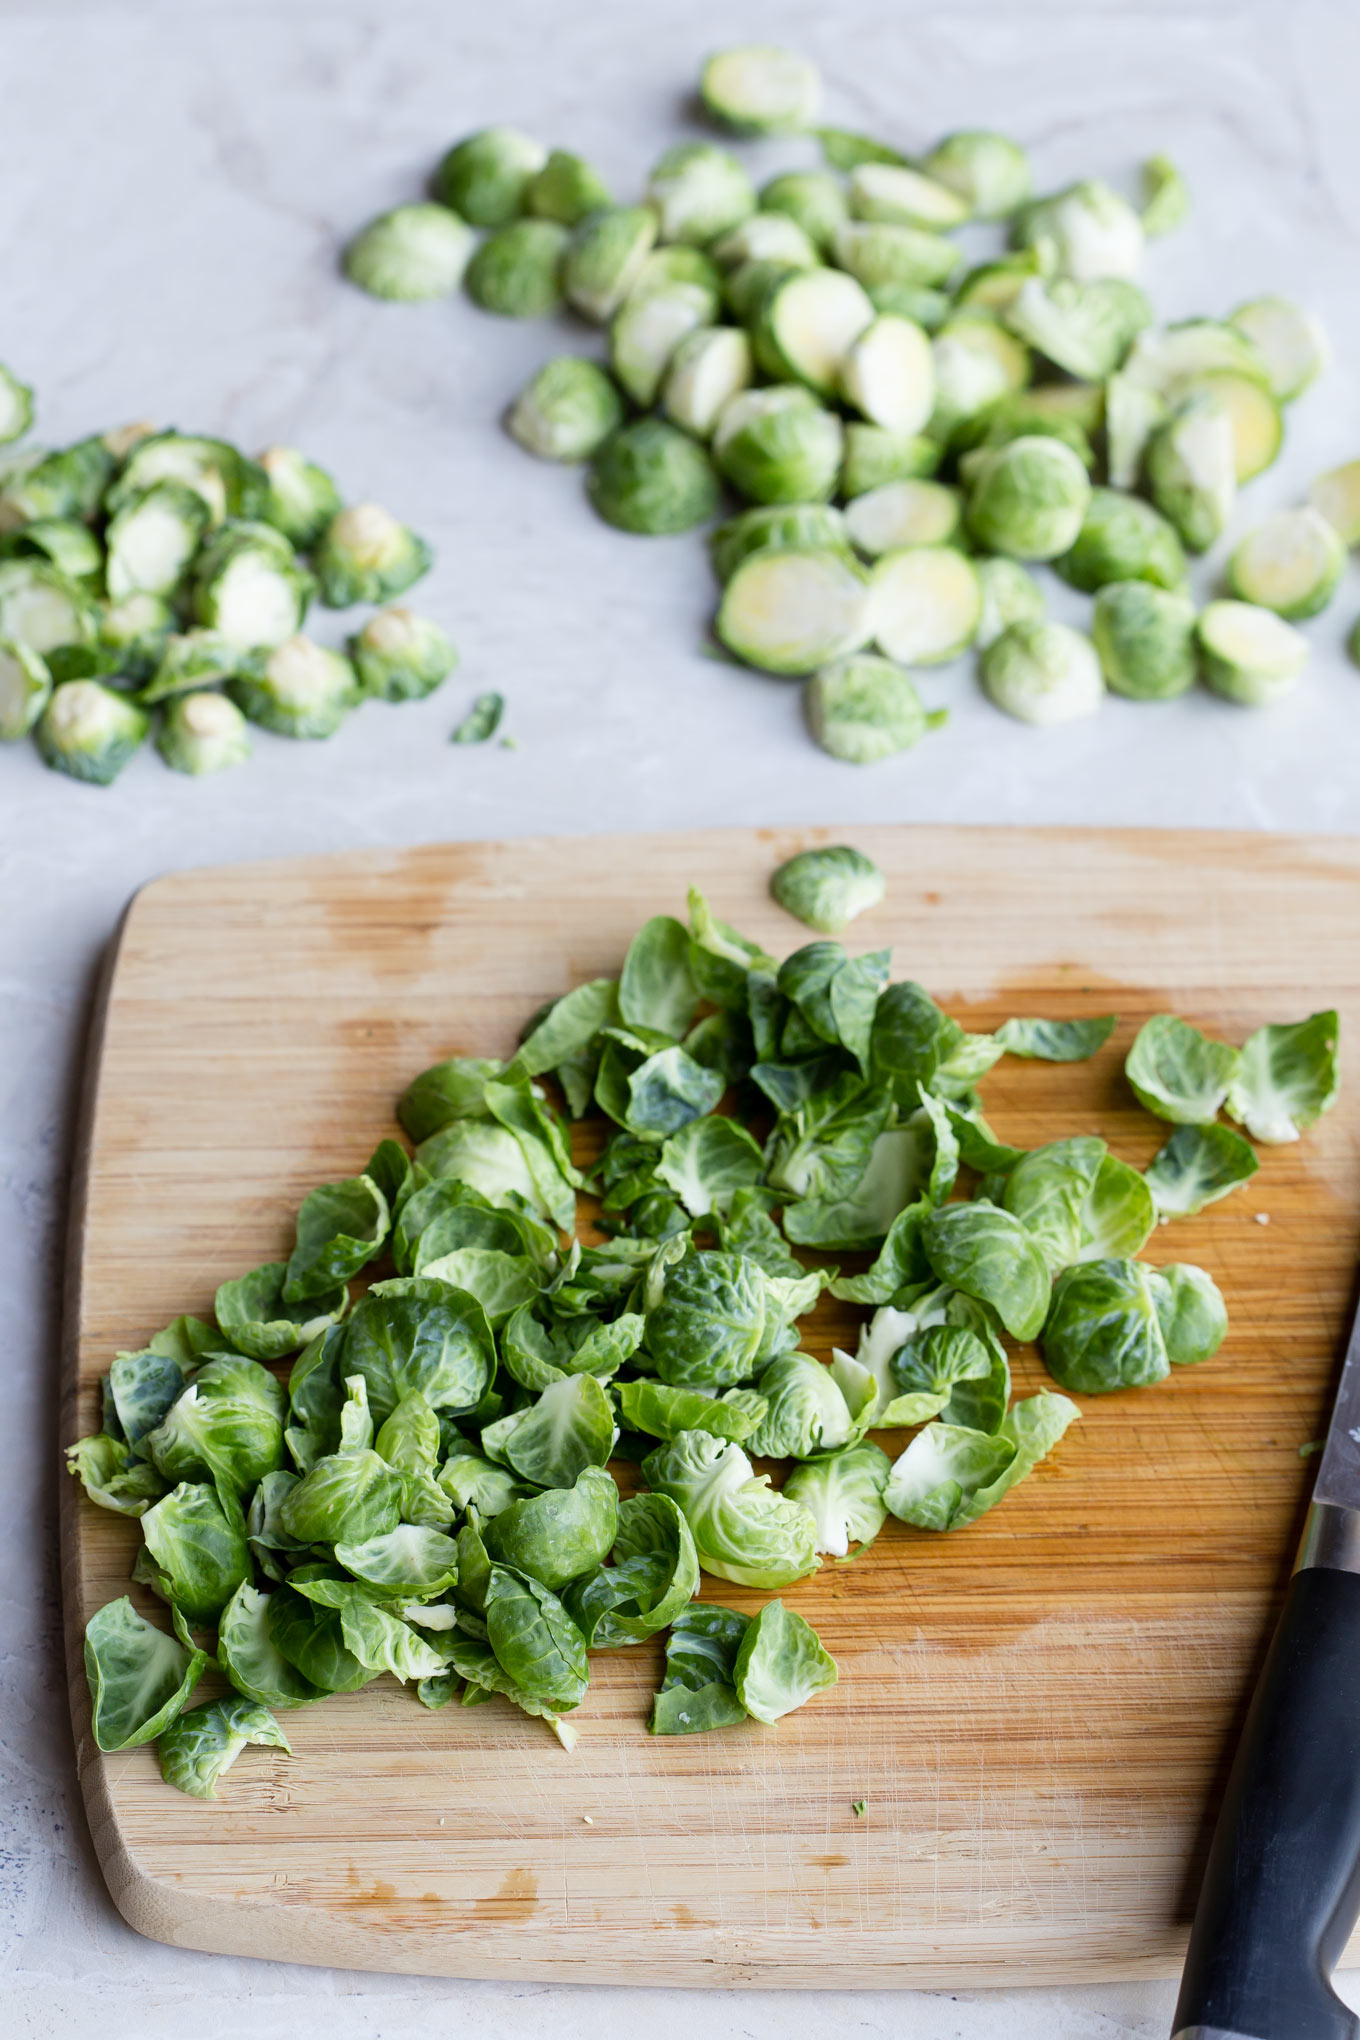 Trimmed Brussels sprouts on a chopping board